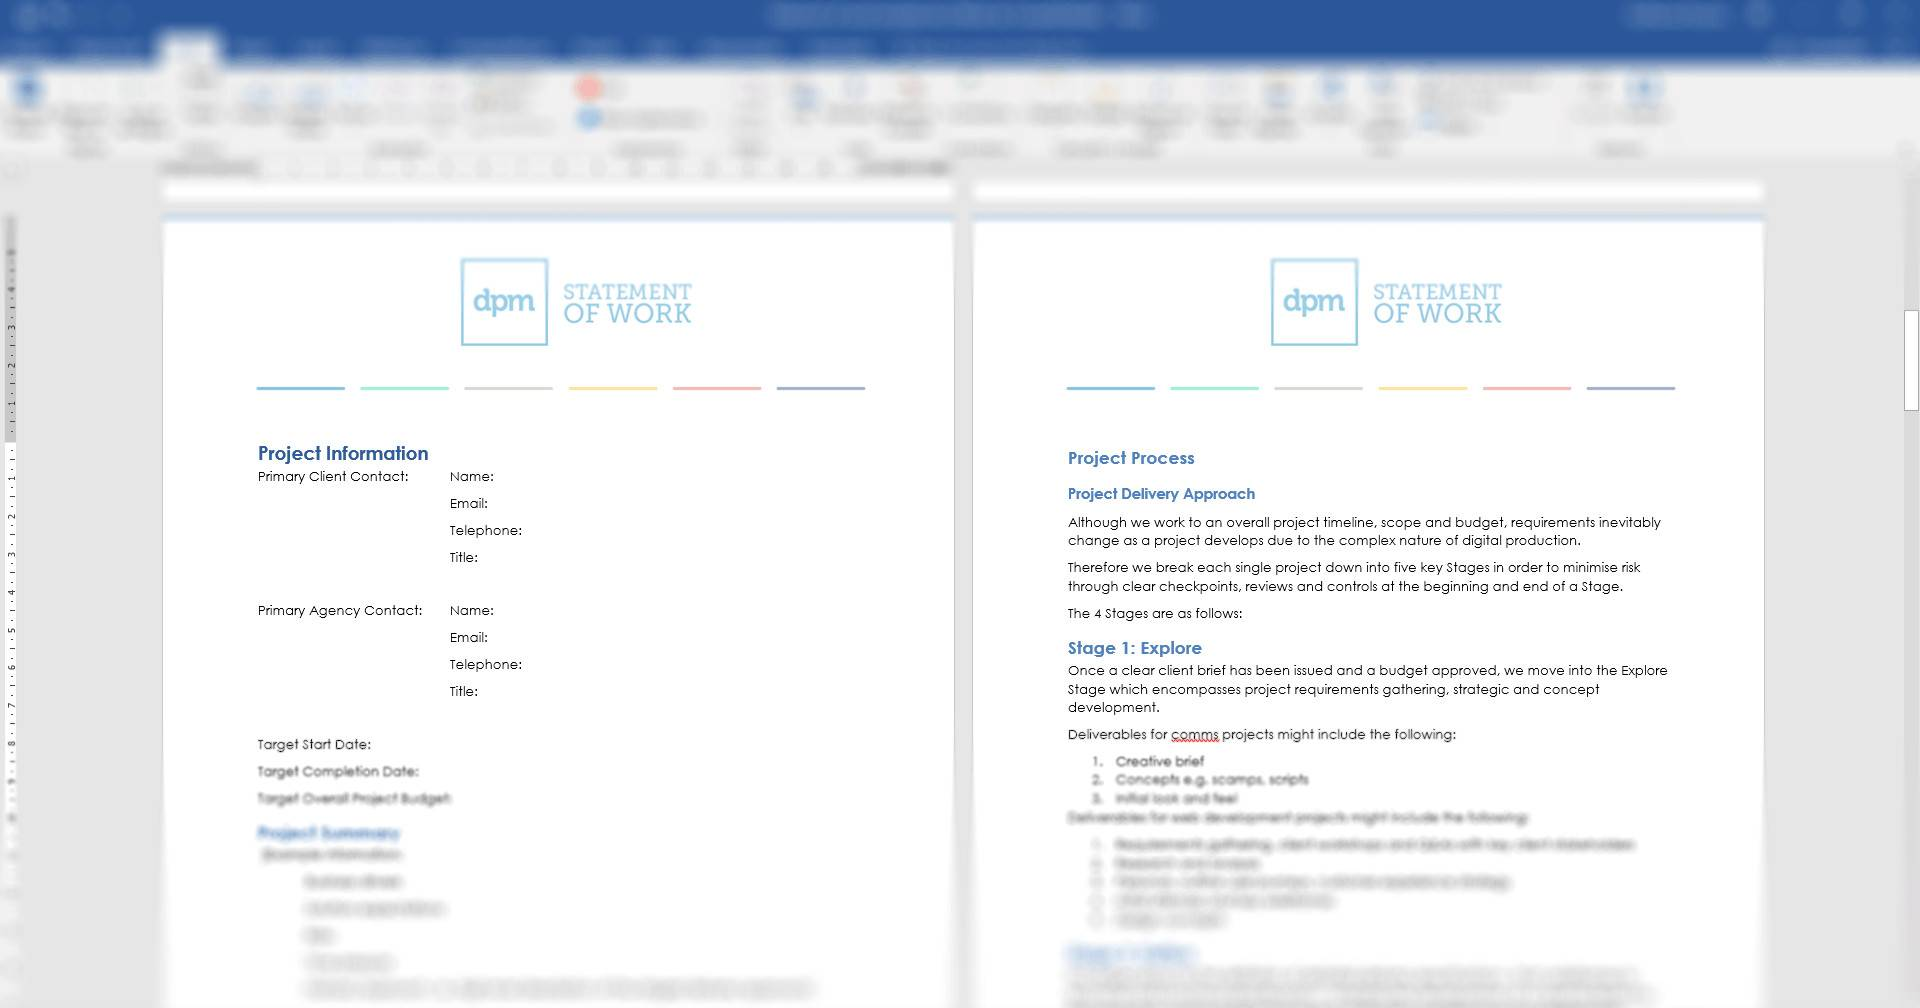 Transitional Care Management Template